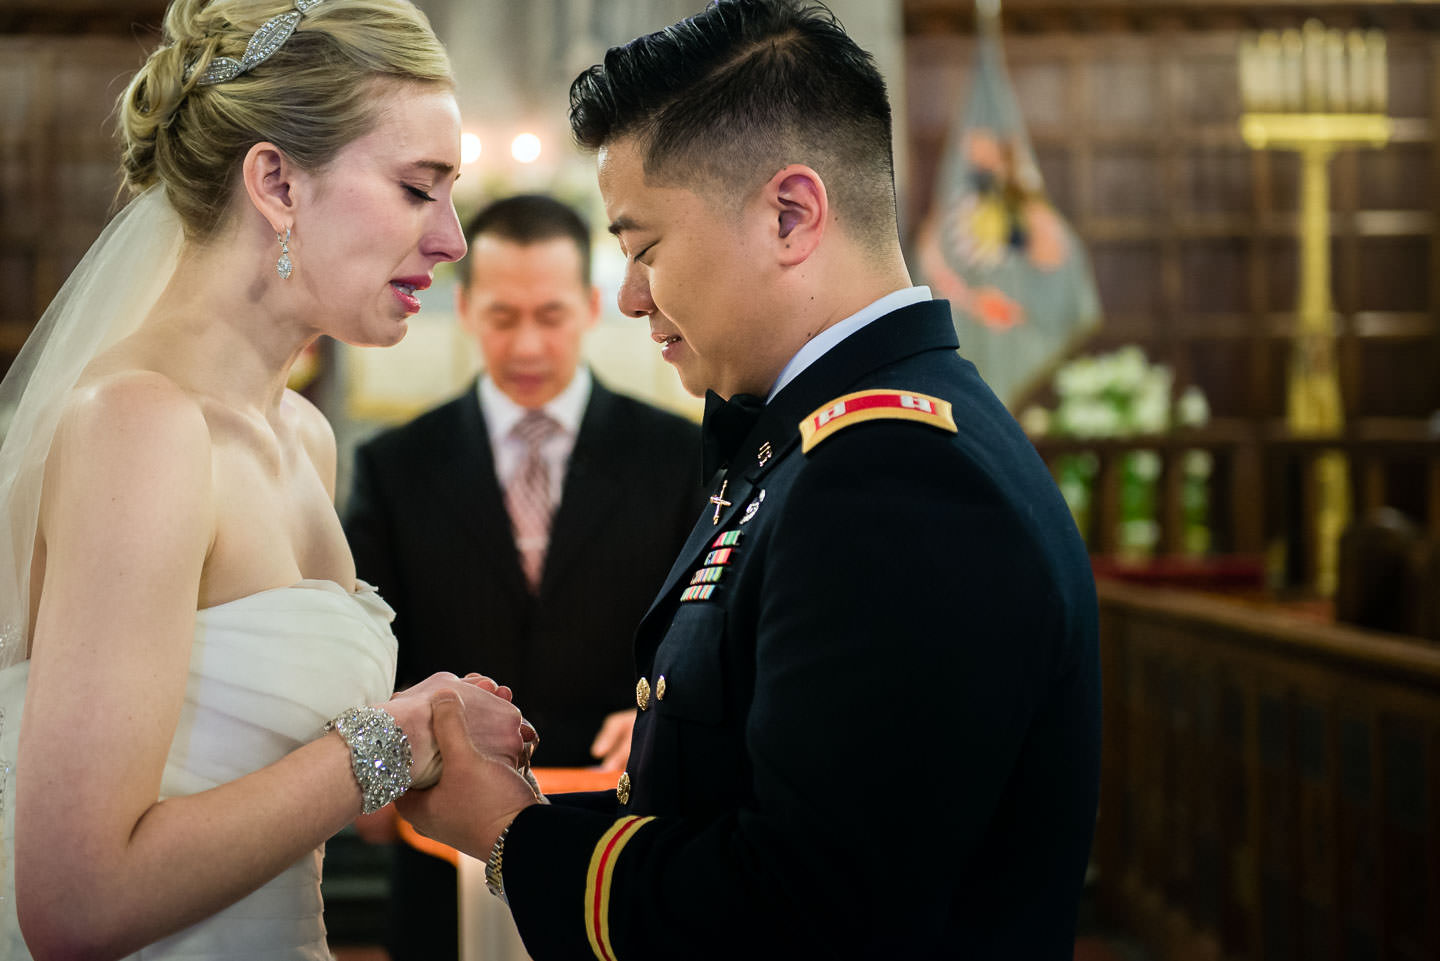 bride and groom cry emotionally during wedding ceremony at west point military academy